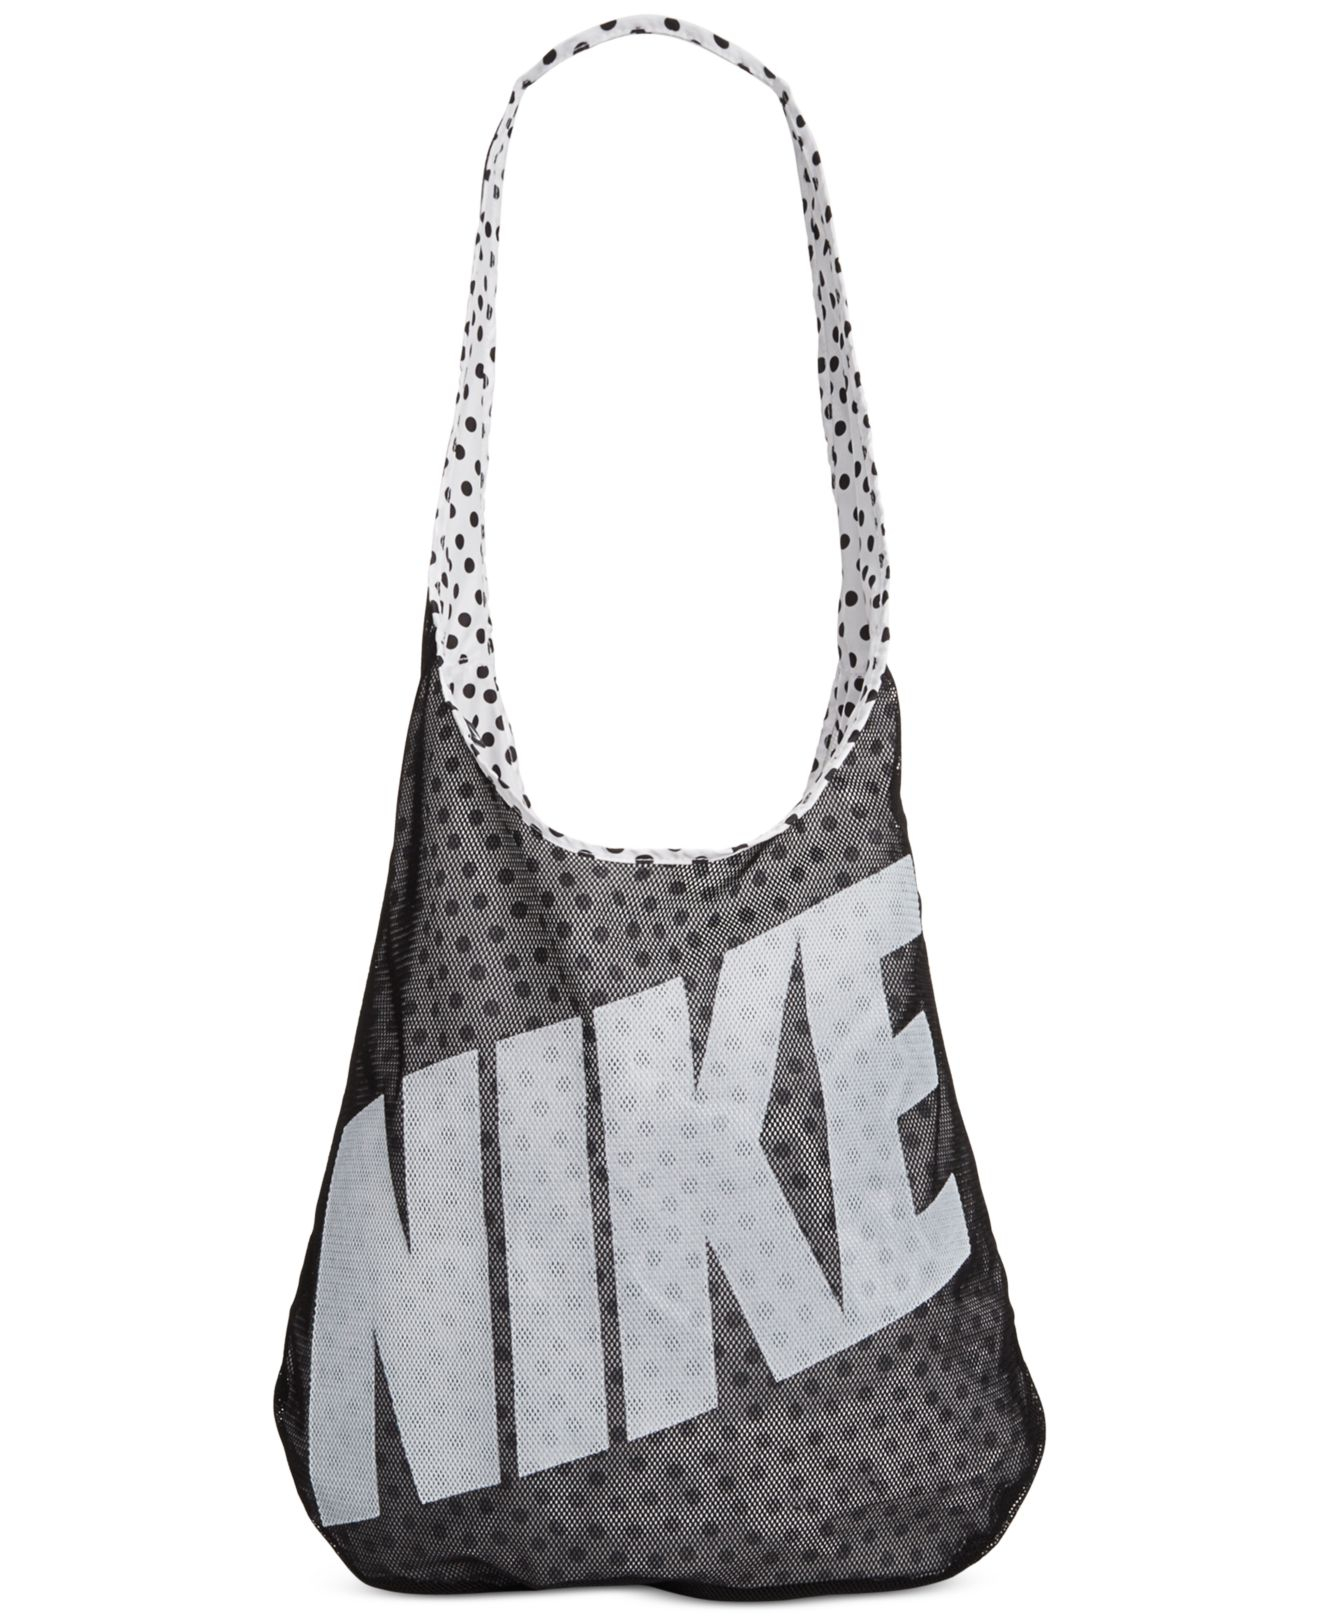 96d277d73f Lyst - Nike Graphic-print Tote Bag in Gray